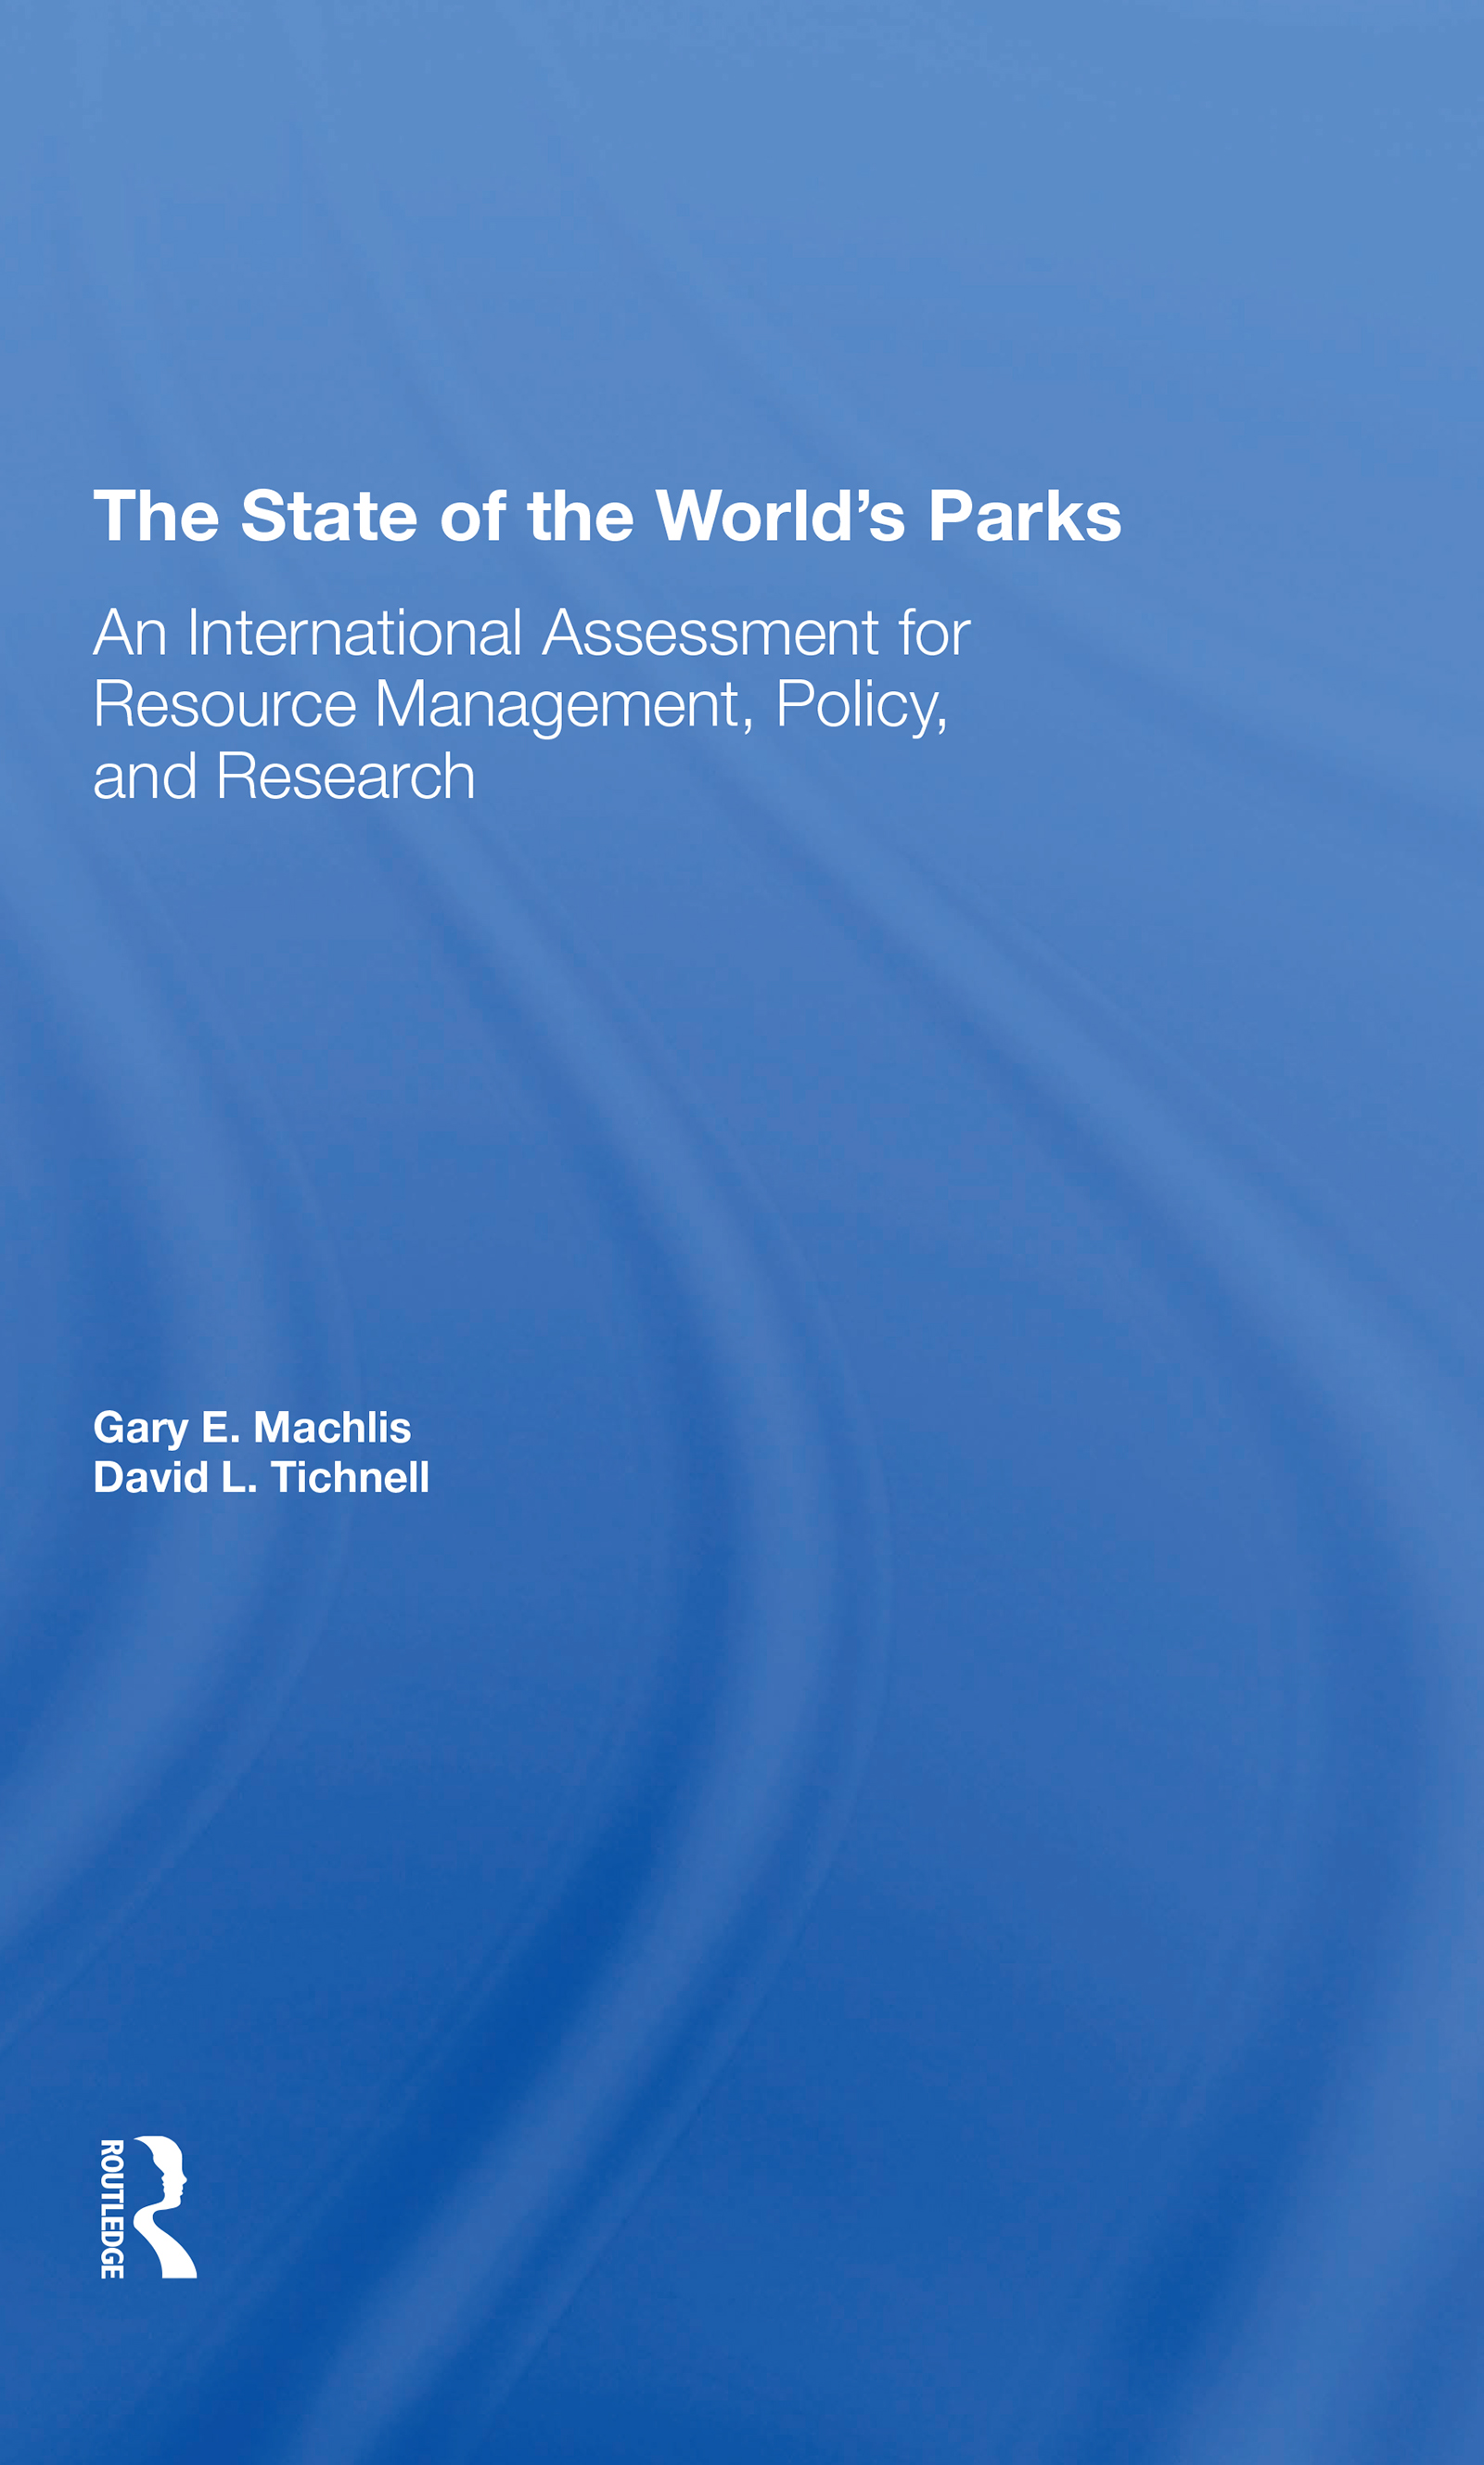 The State Of The World's Parks